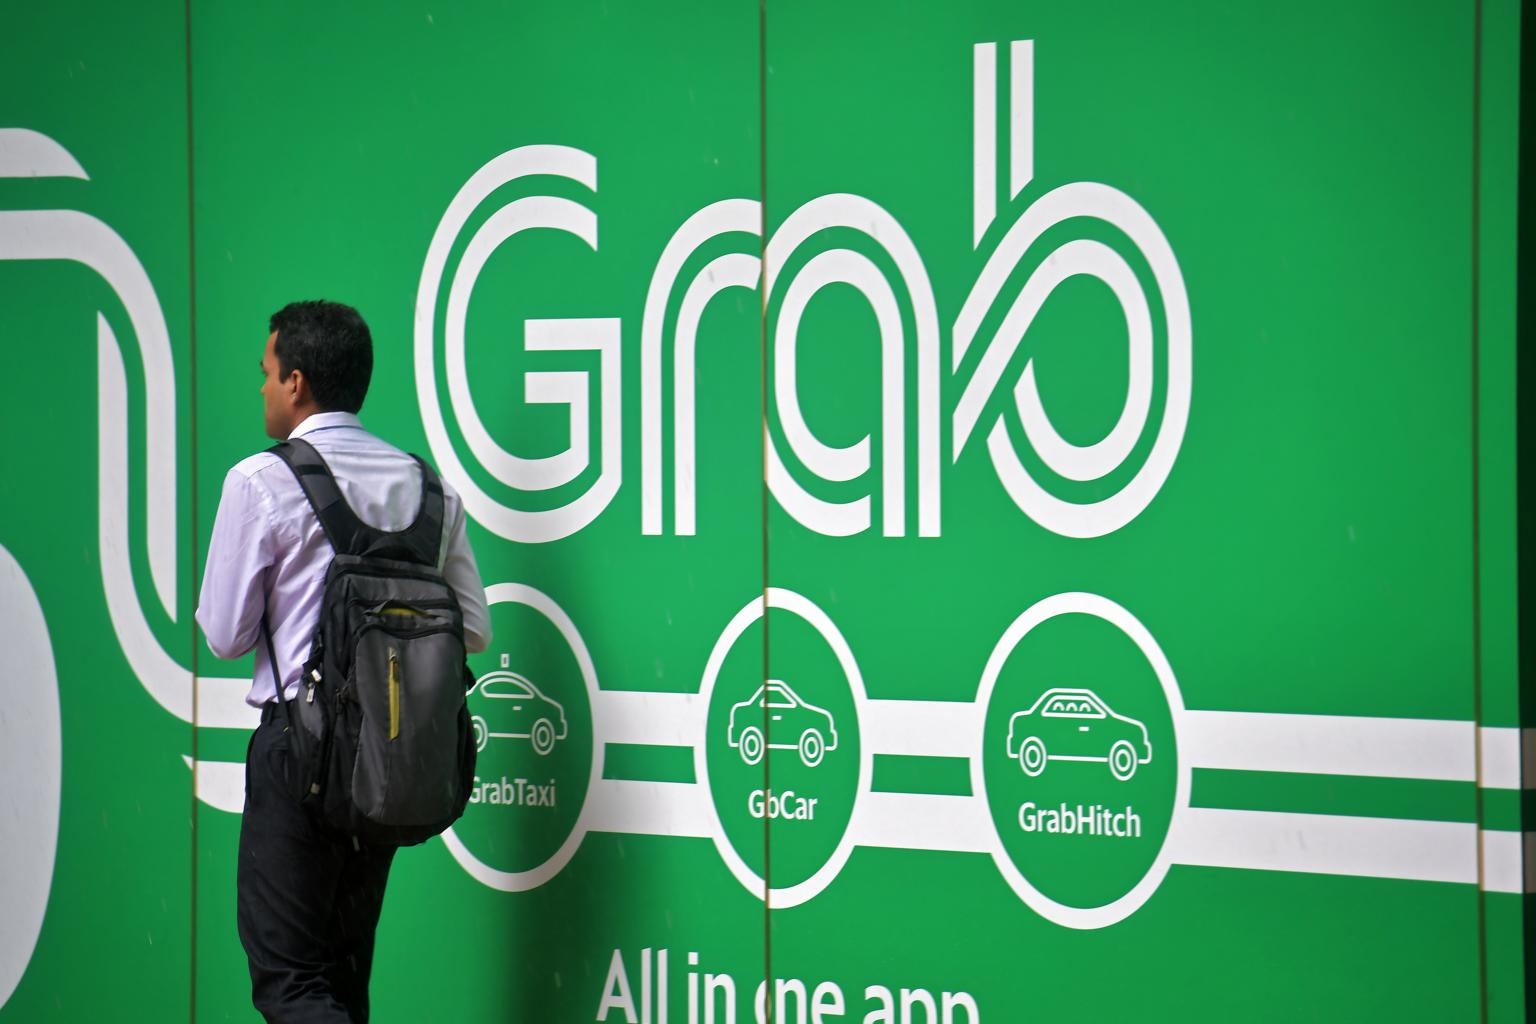 Grab adds Agoda, Booking com, BookMyShow, HOOQ to super app, Garage